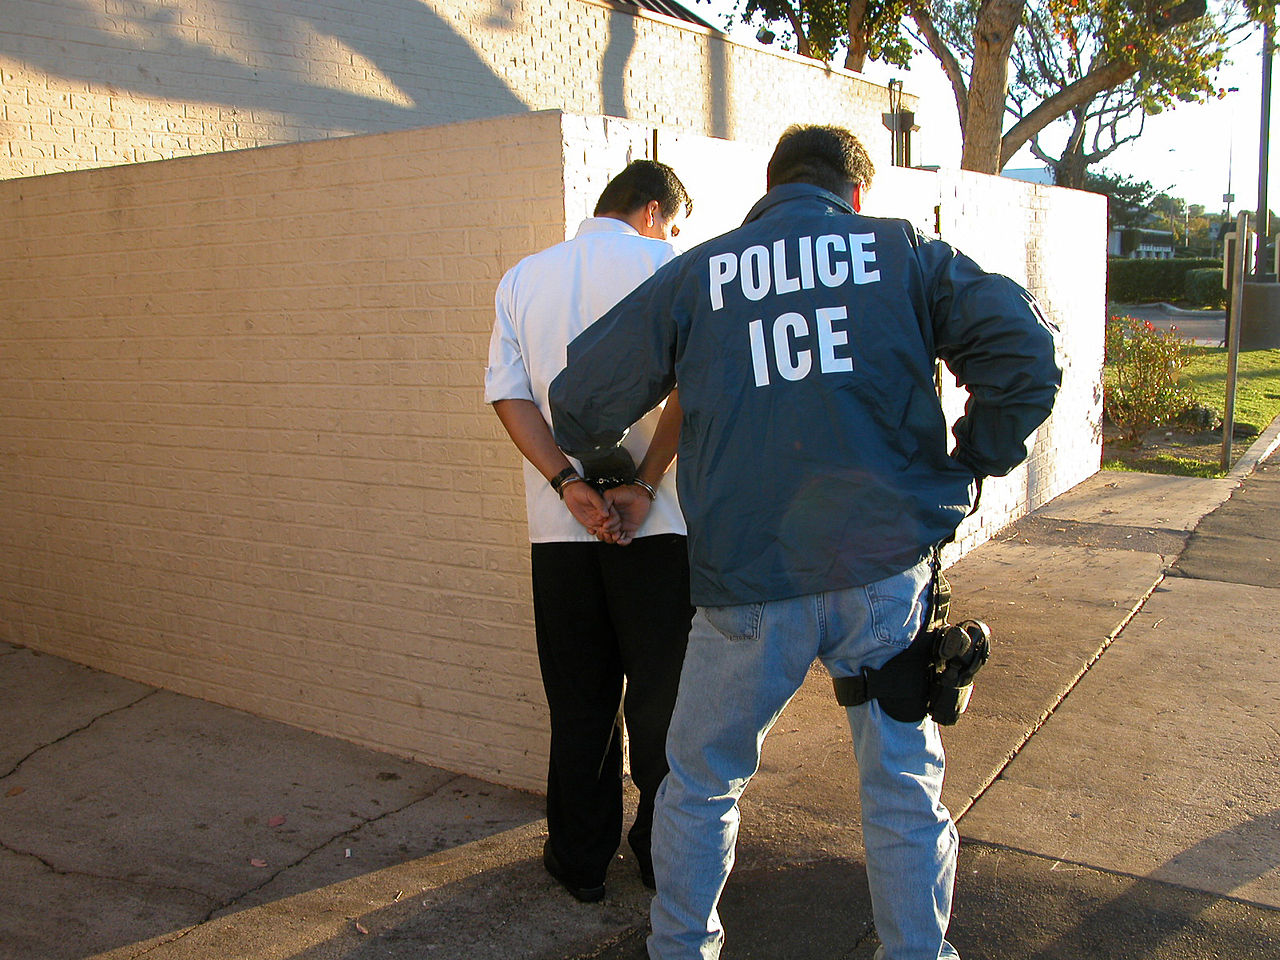 1280px-US_Immigration_and_Customs_Enforcement_arrest.jpg